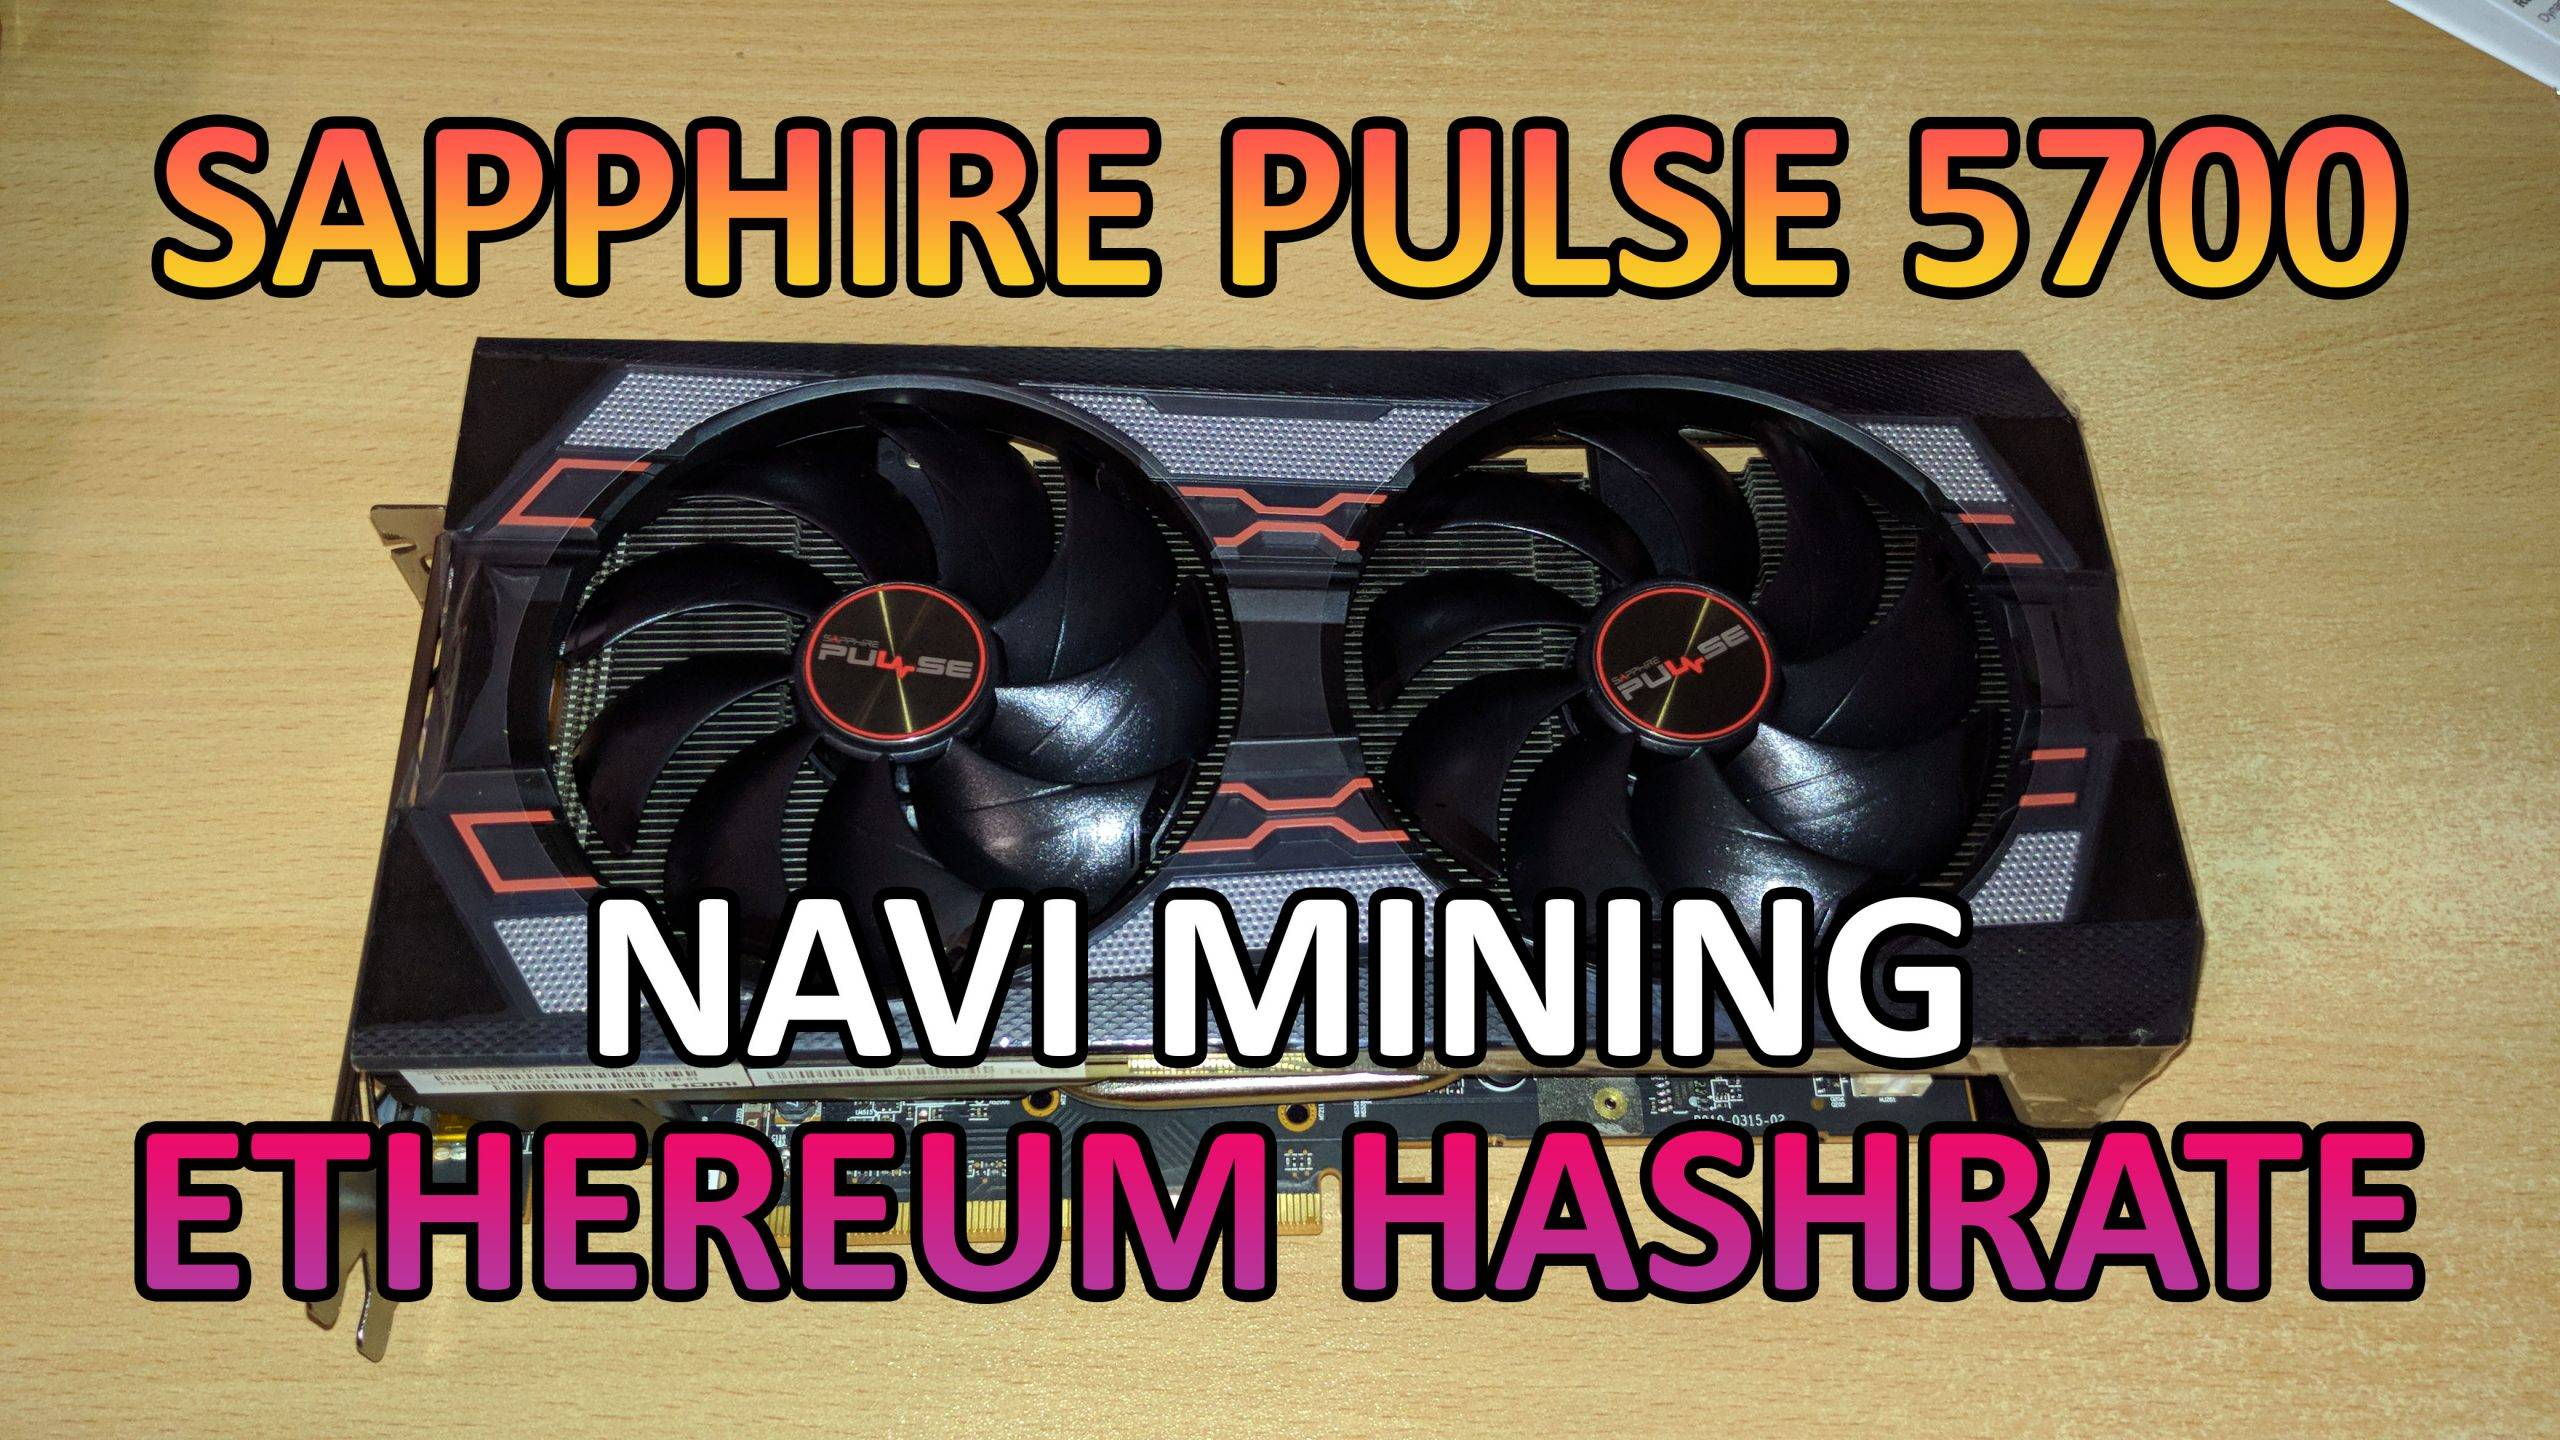 AMD Sapphire Pulse 5700 – Ethereum hashrate and power draw